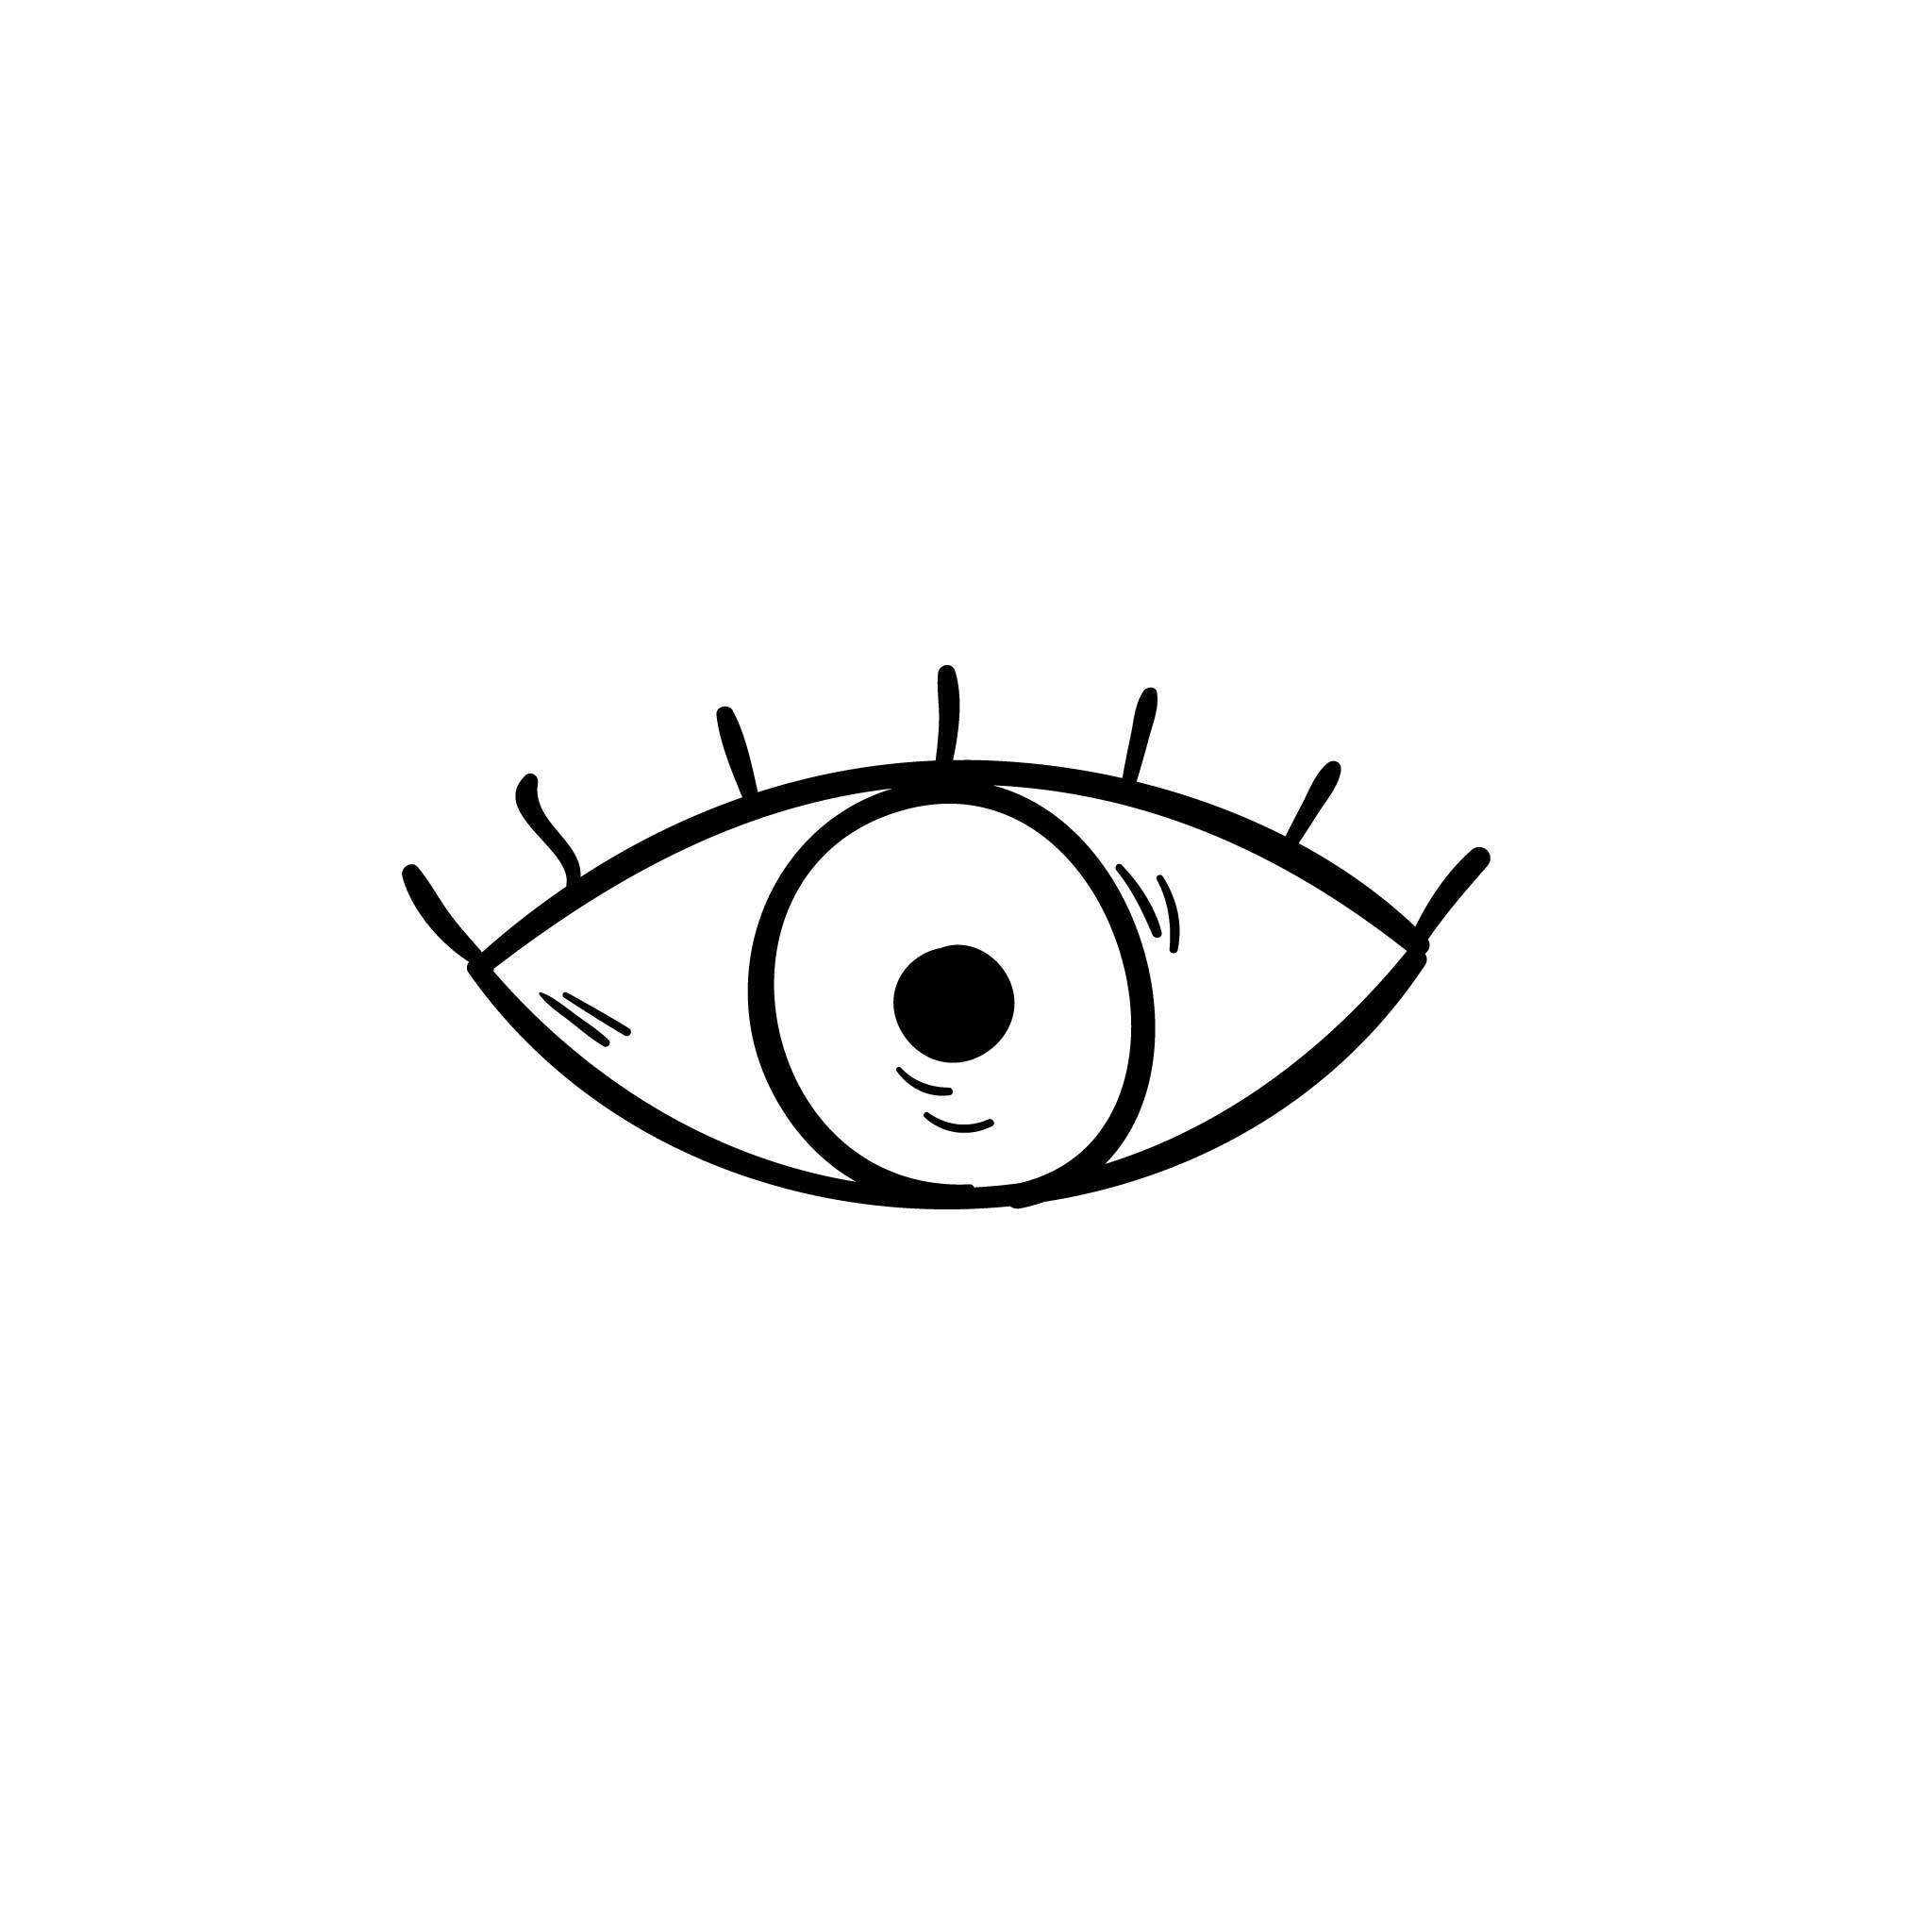 Min_Eye Temporary Tatoo Design. Tags: Minimal, Black and White, People,